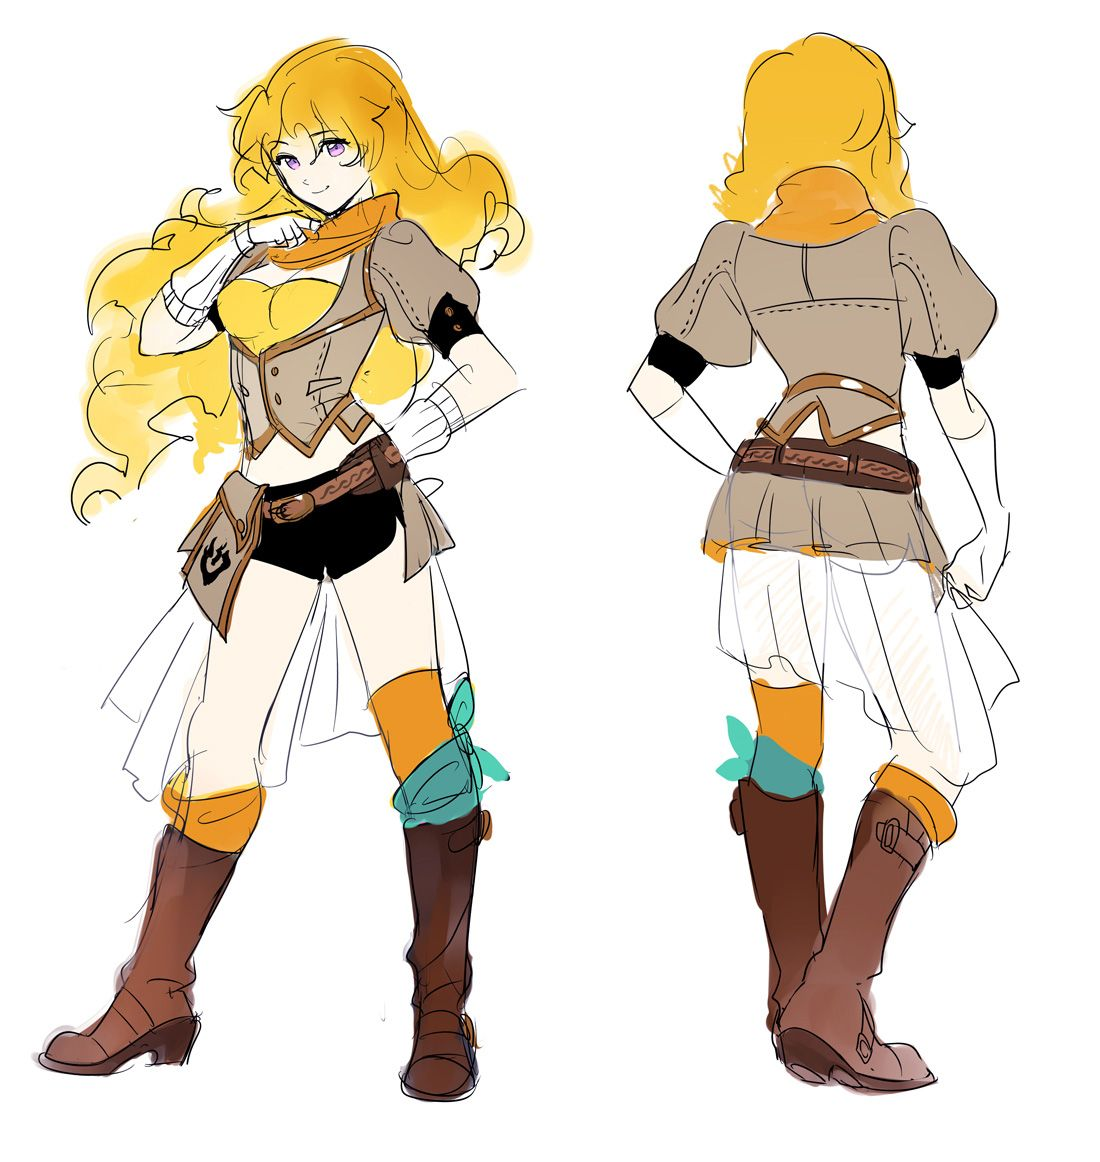 Rwby Character Design Contest : Yang xiao long image gallery character design references